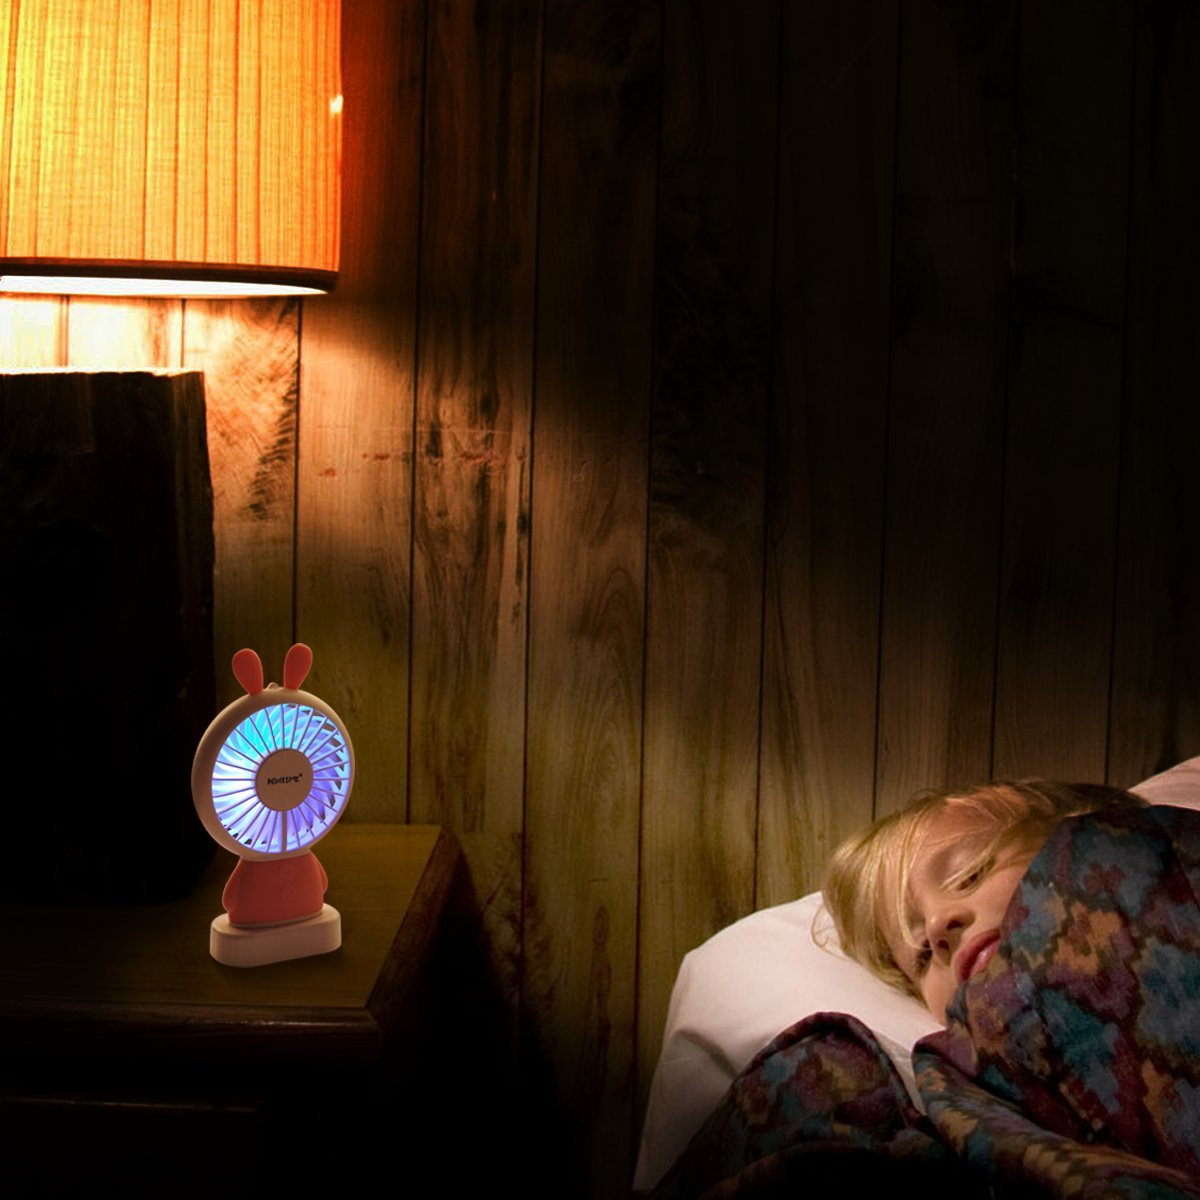 BONTIME Portable Fan - Mini Hand held Fan, Rechargeable USB Fan with Colorful Night Light, 2 Speeds, Cooling for Traveling, Fishing, Camping by BONTIME (Image #10)